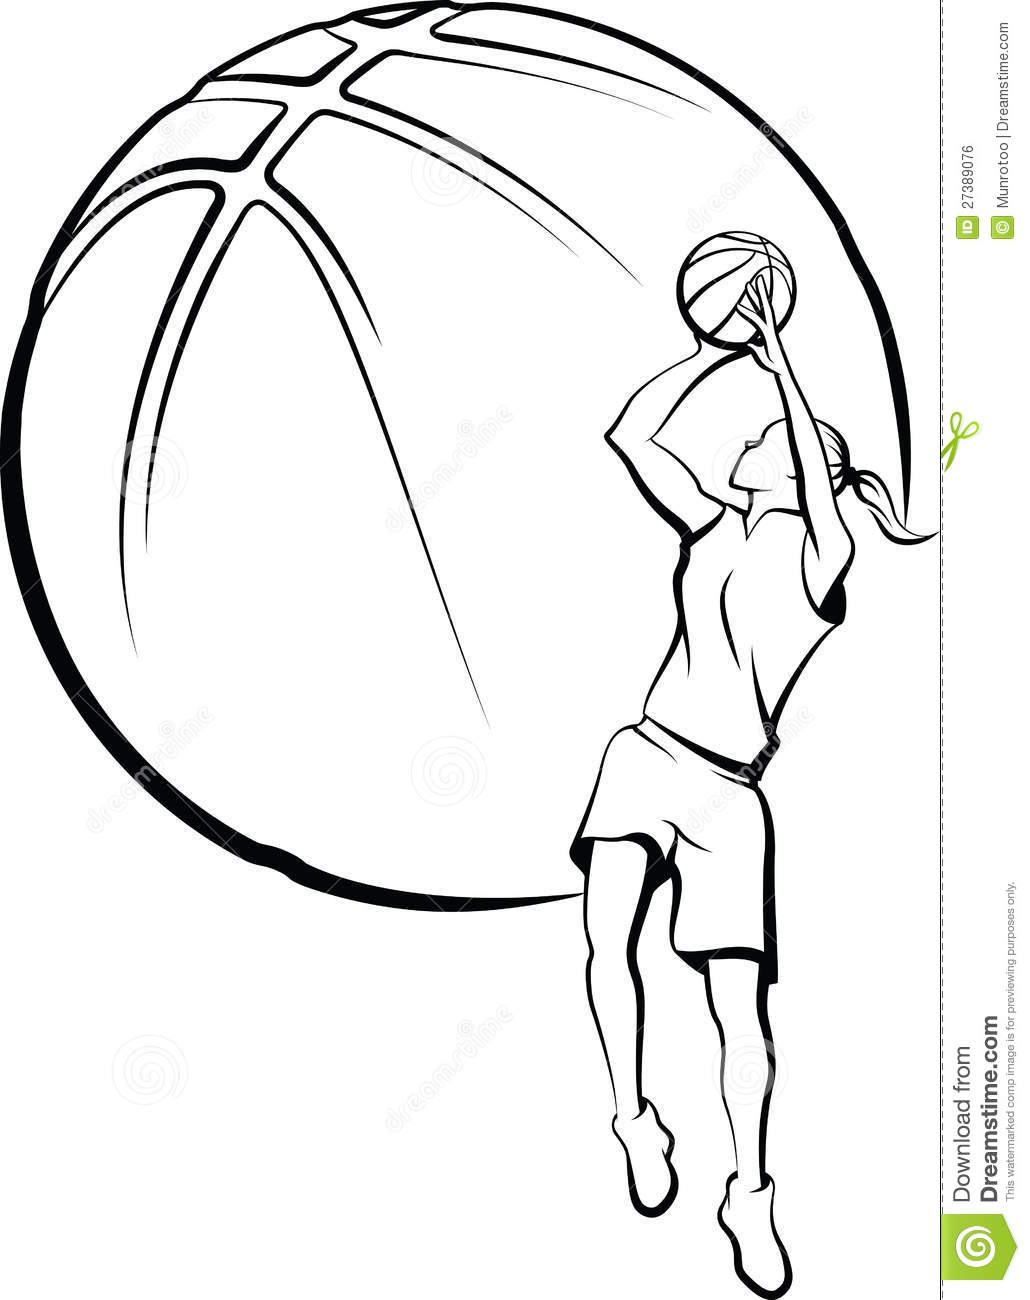 Girl Shooting Basketball Clipart - Clipart Suggest